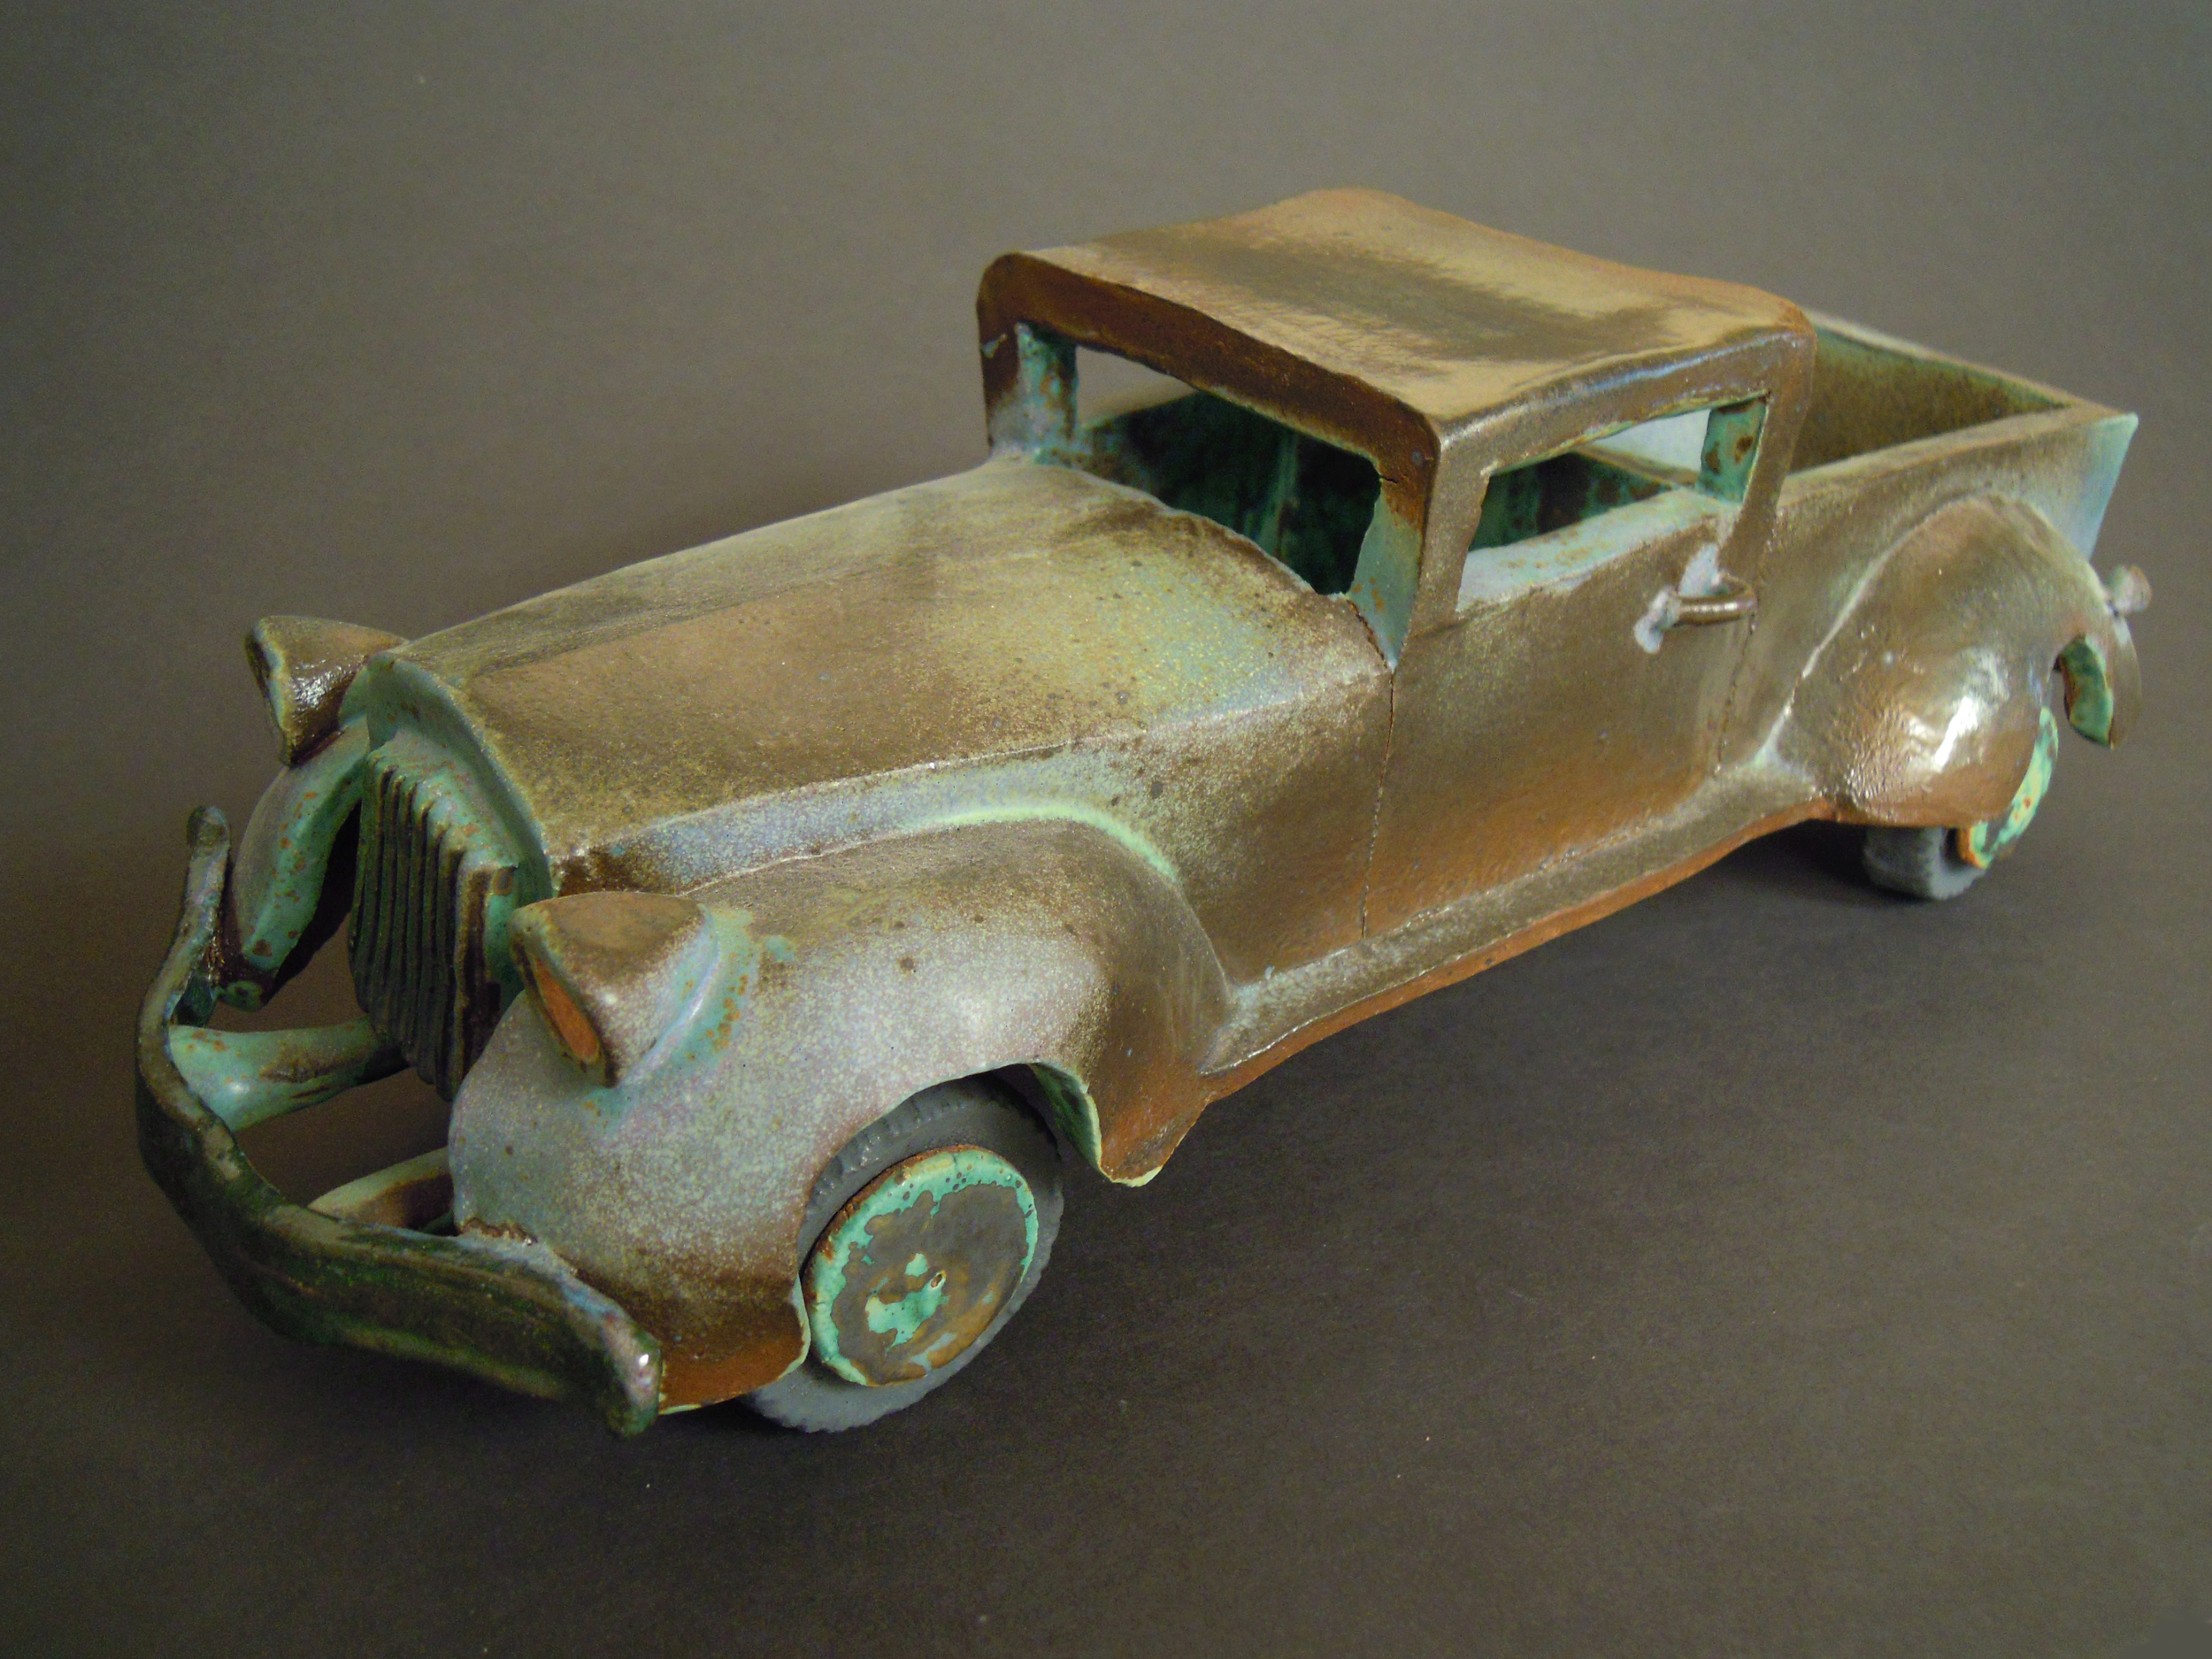 1930's Ford Truck, 2010. The first vehicle, glazed in Val Cushing green and blue. Feels like its been in the desert too long, perhaps it was in the kiln too long